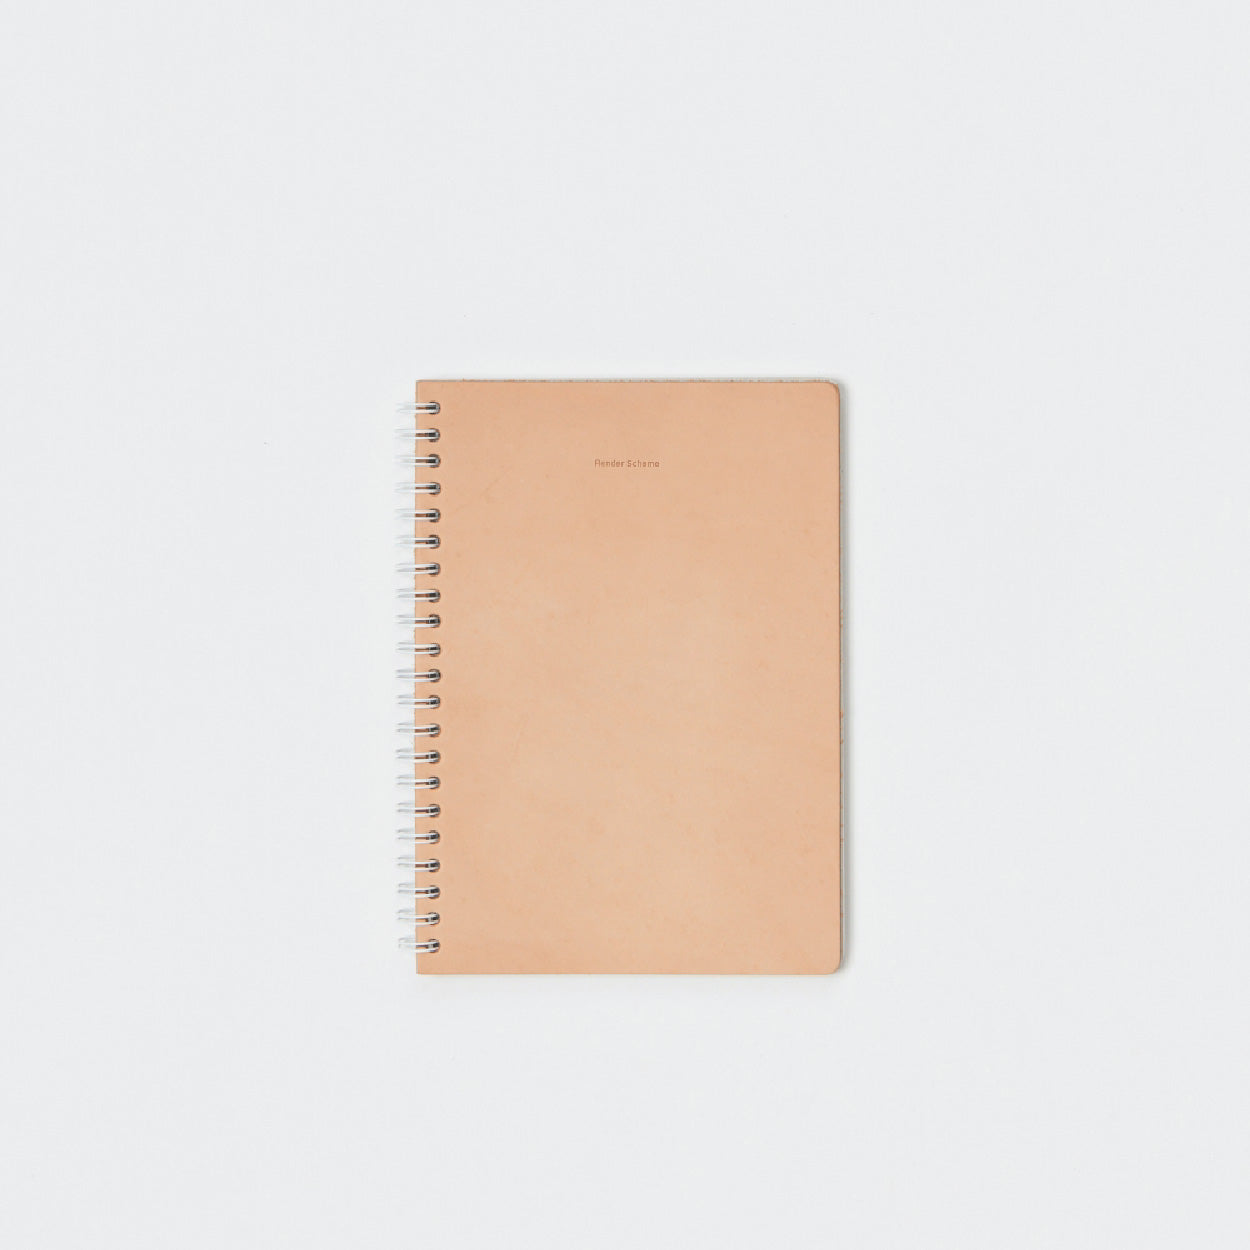 Hender Scheme Removable Ring Note A5 Beige - OKURA